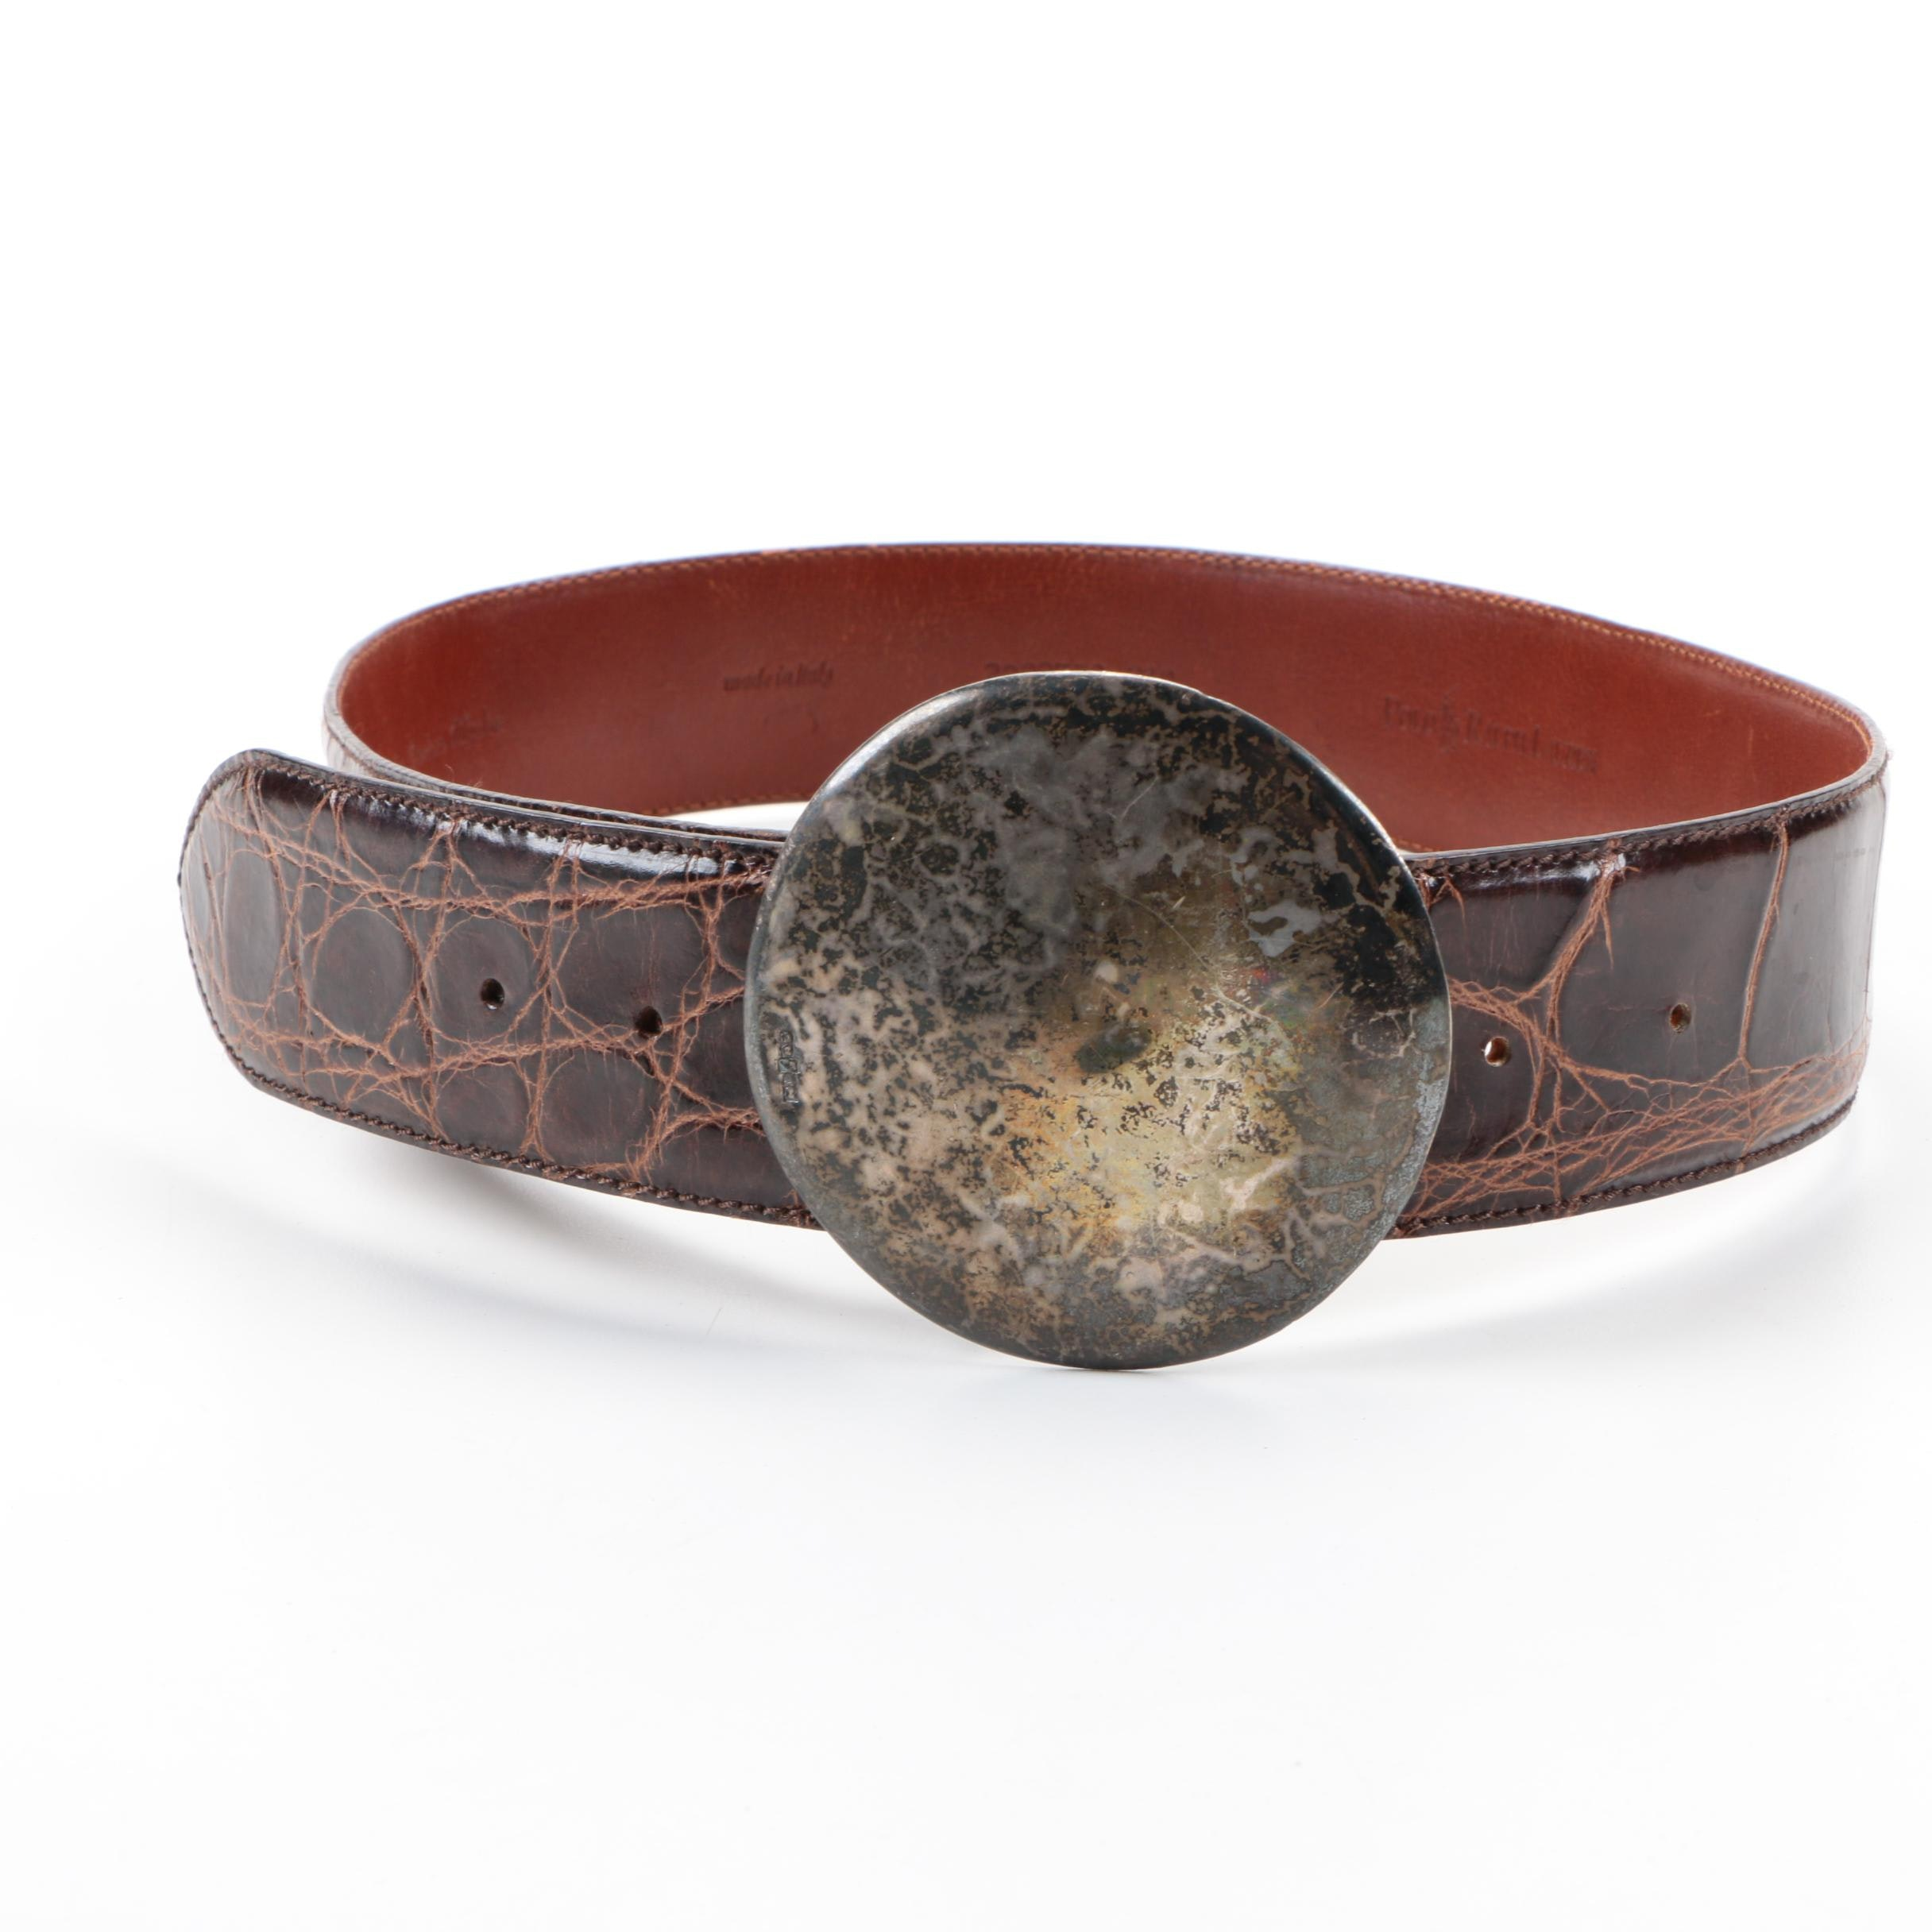 Polo Ralph Lauren Sterling Silver and Alligator Leather Belt